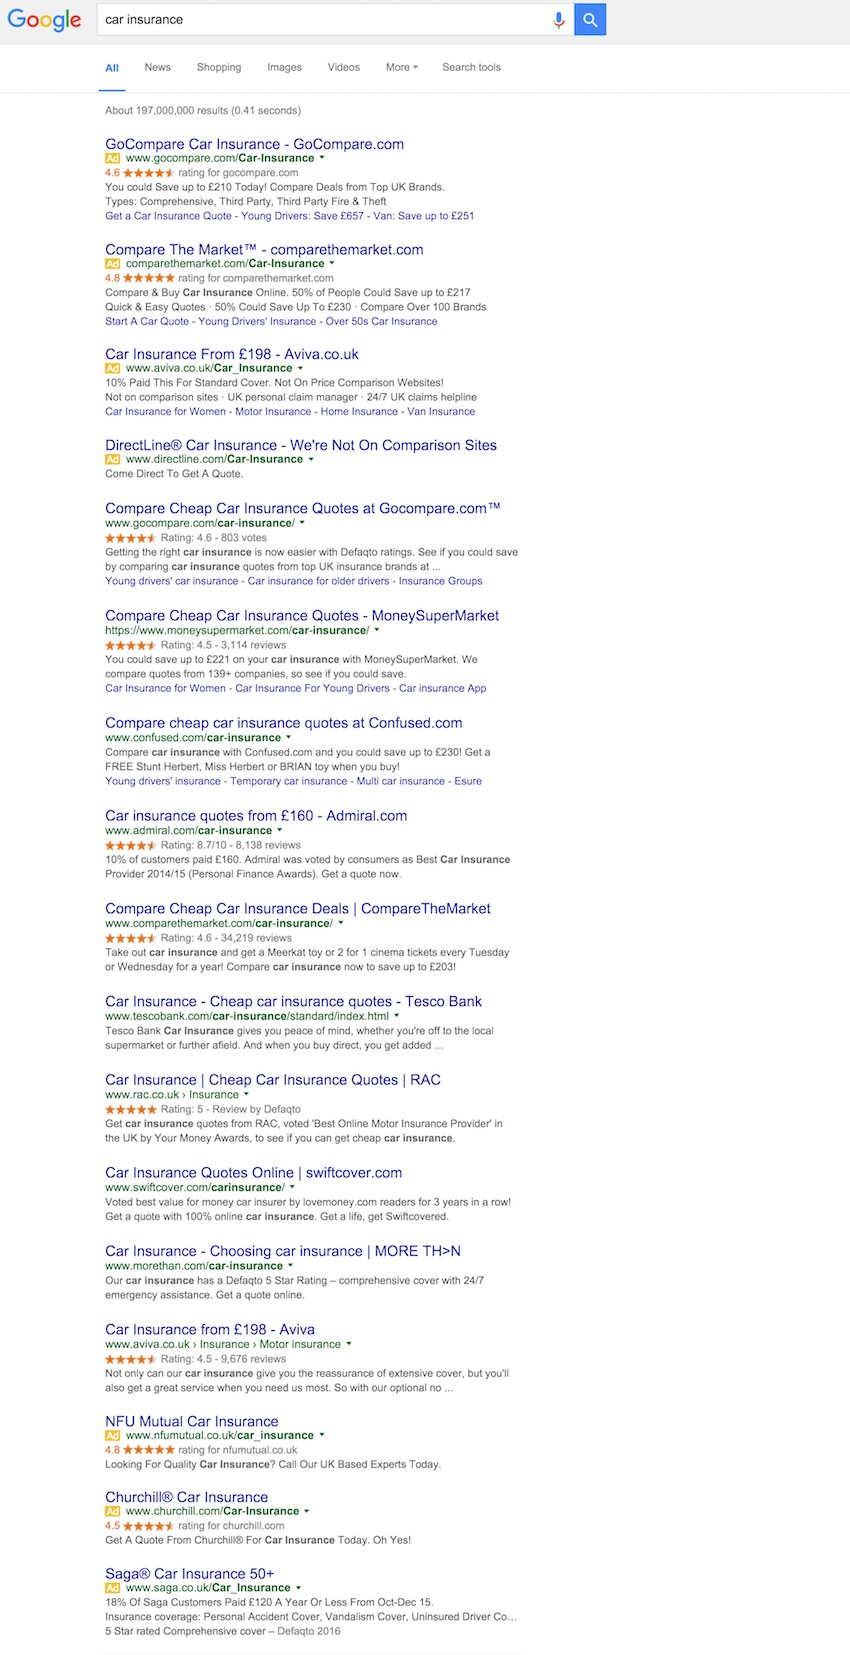 Car-Insurance-Search-Results